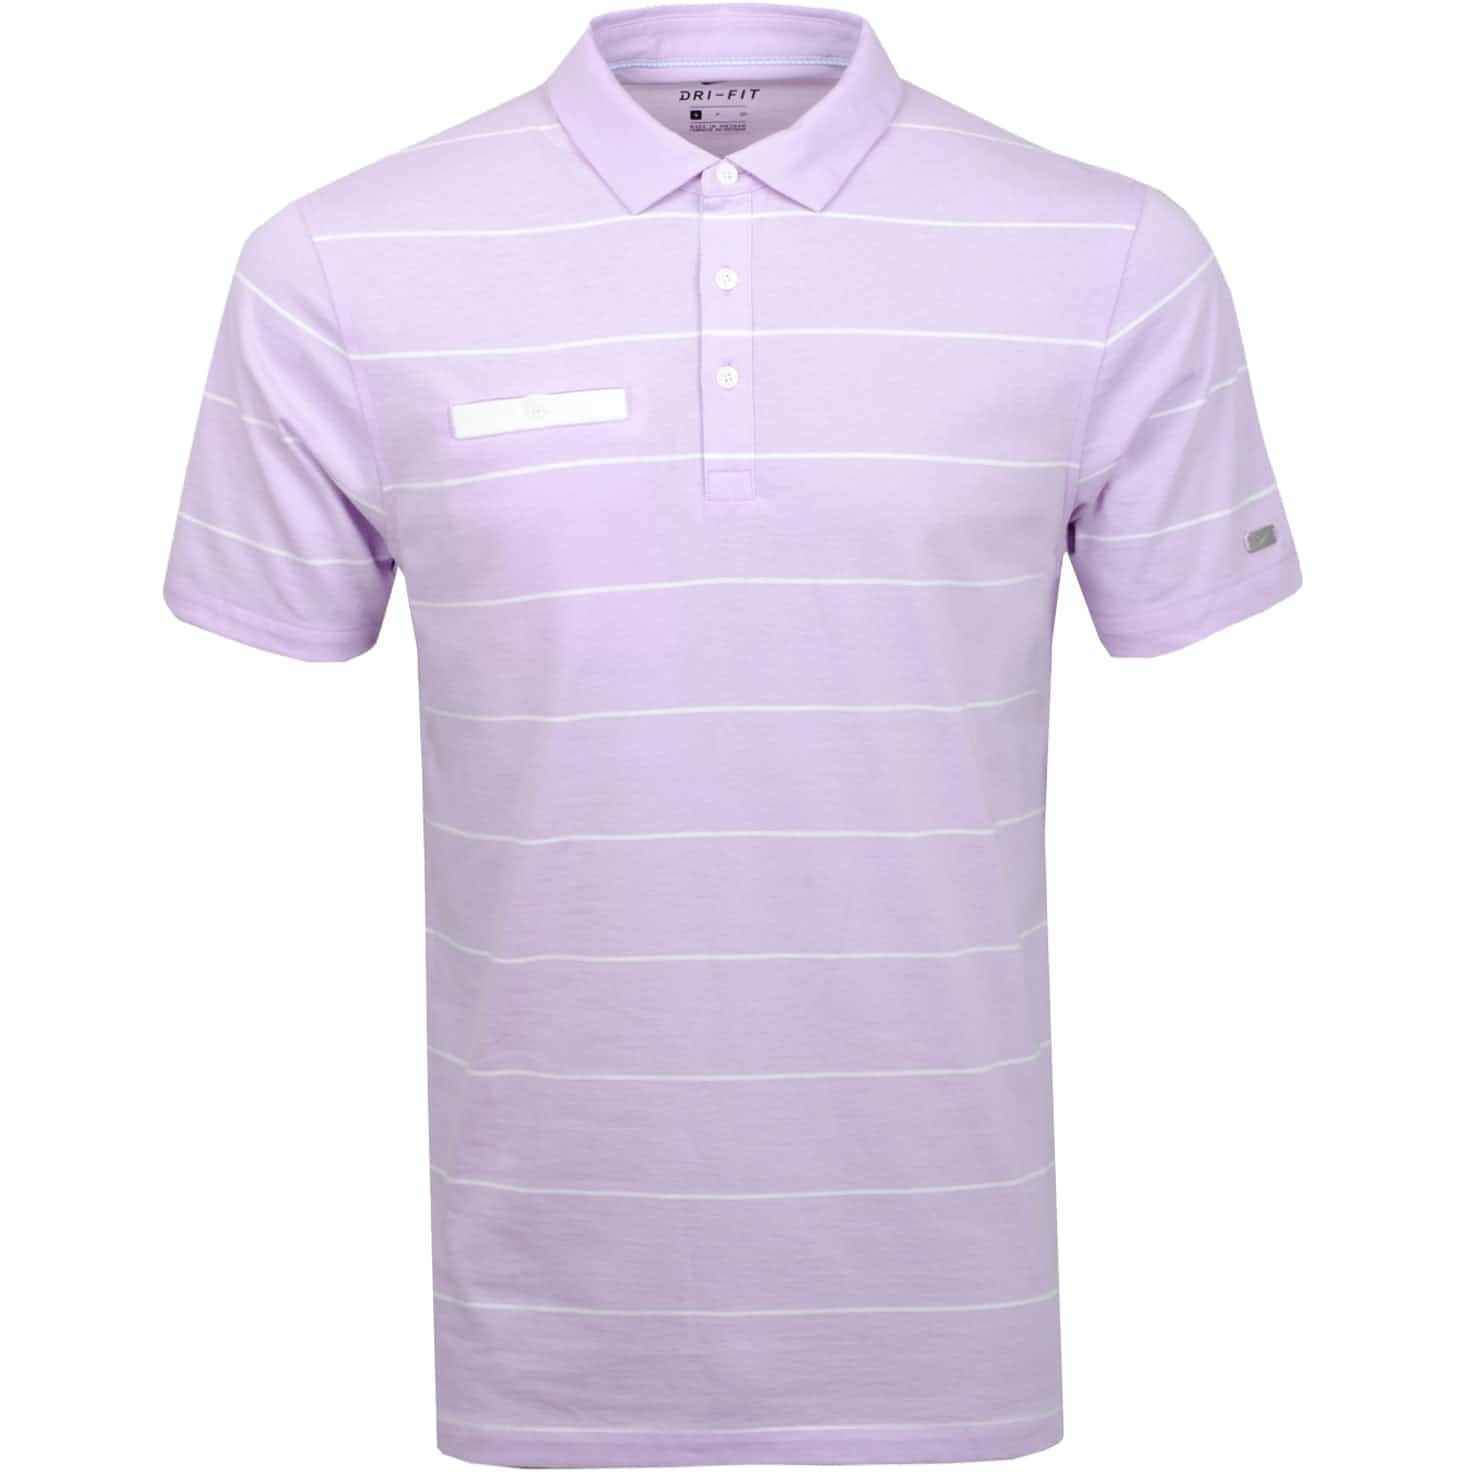 Dri-Fit Player Stripe Polo Lilac Mist/Sail/White - Summer 19